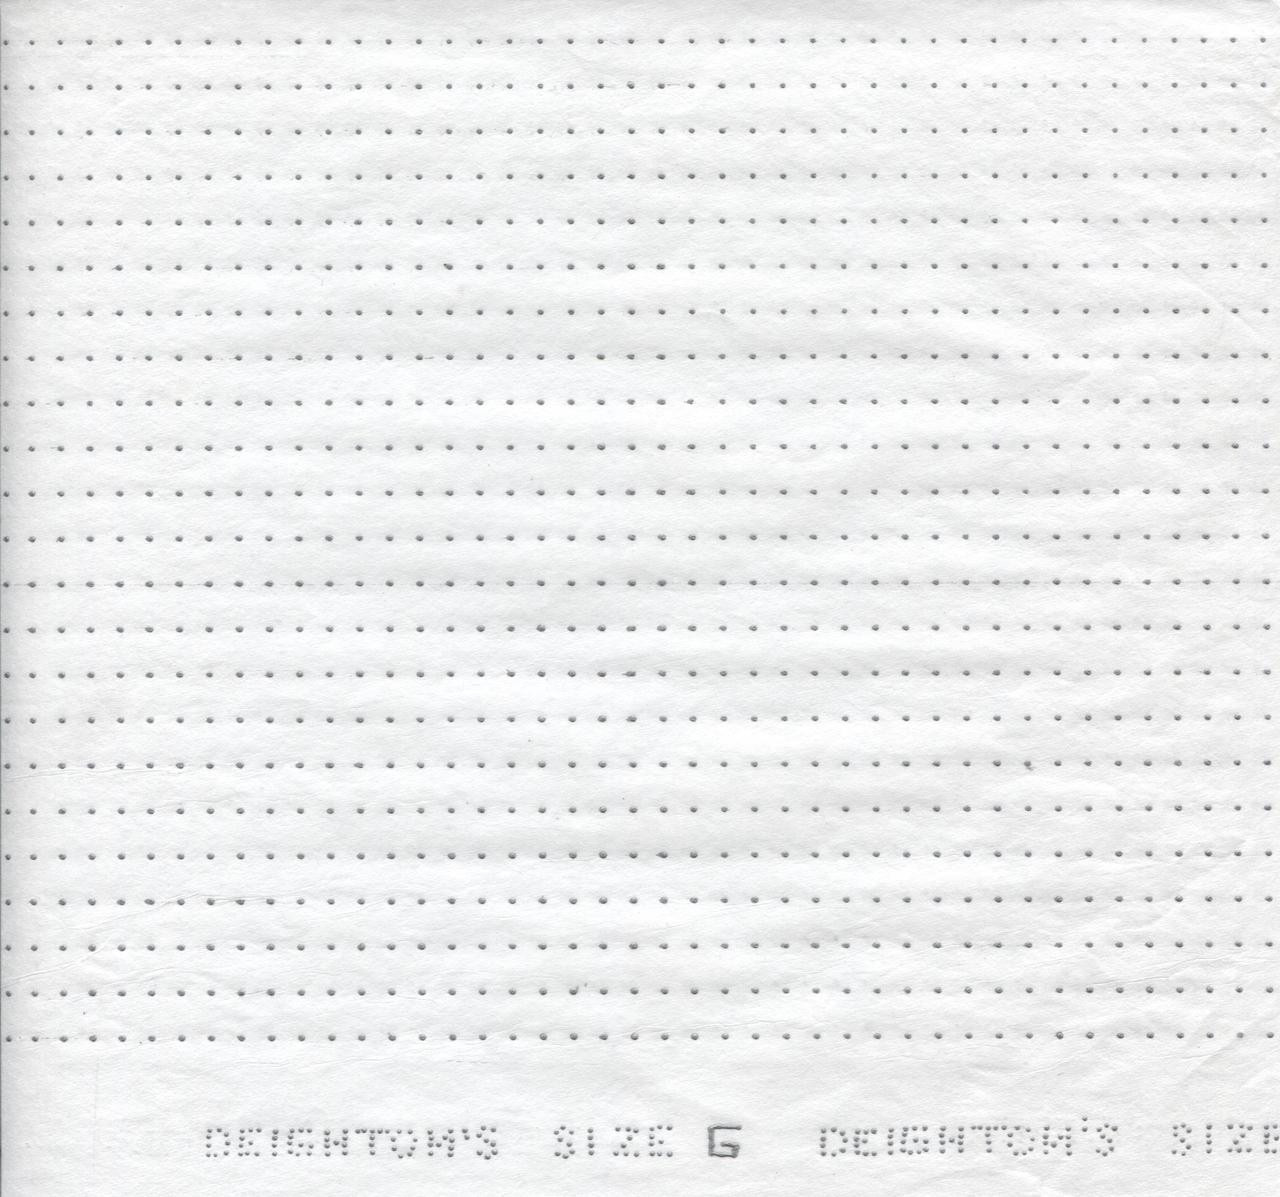 Smocking Transfer Dots - Size 'G' 5 mm x 7.5 mm - see video on how to use - one sheet in each pack